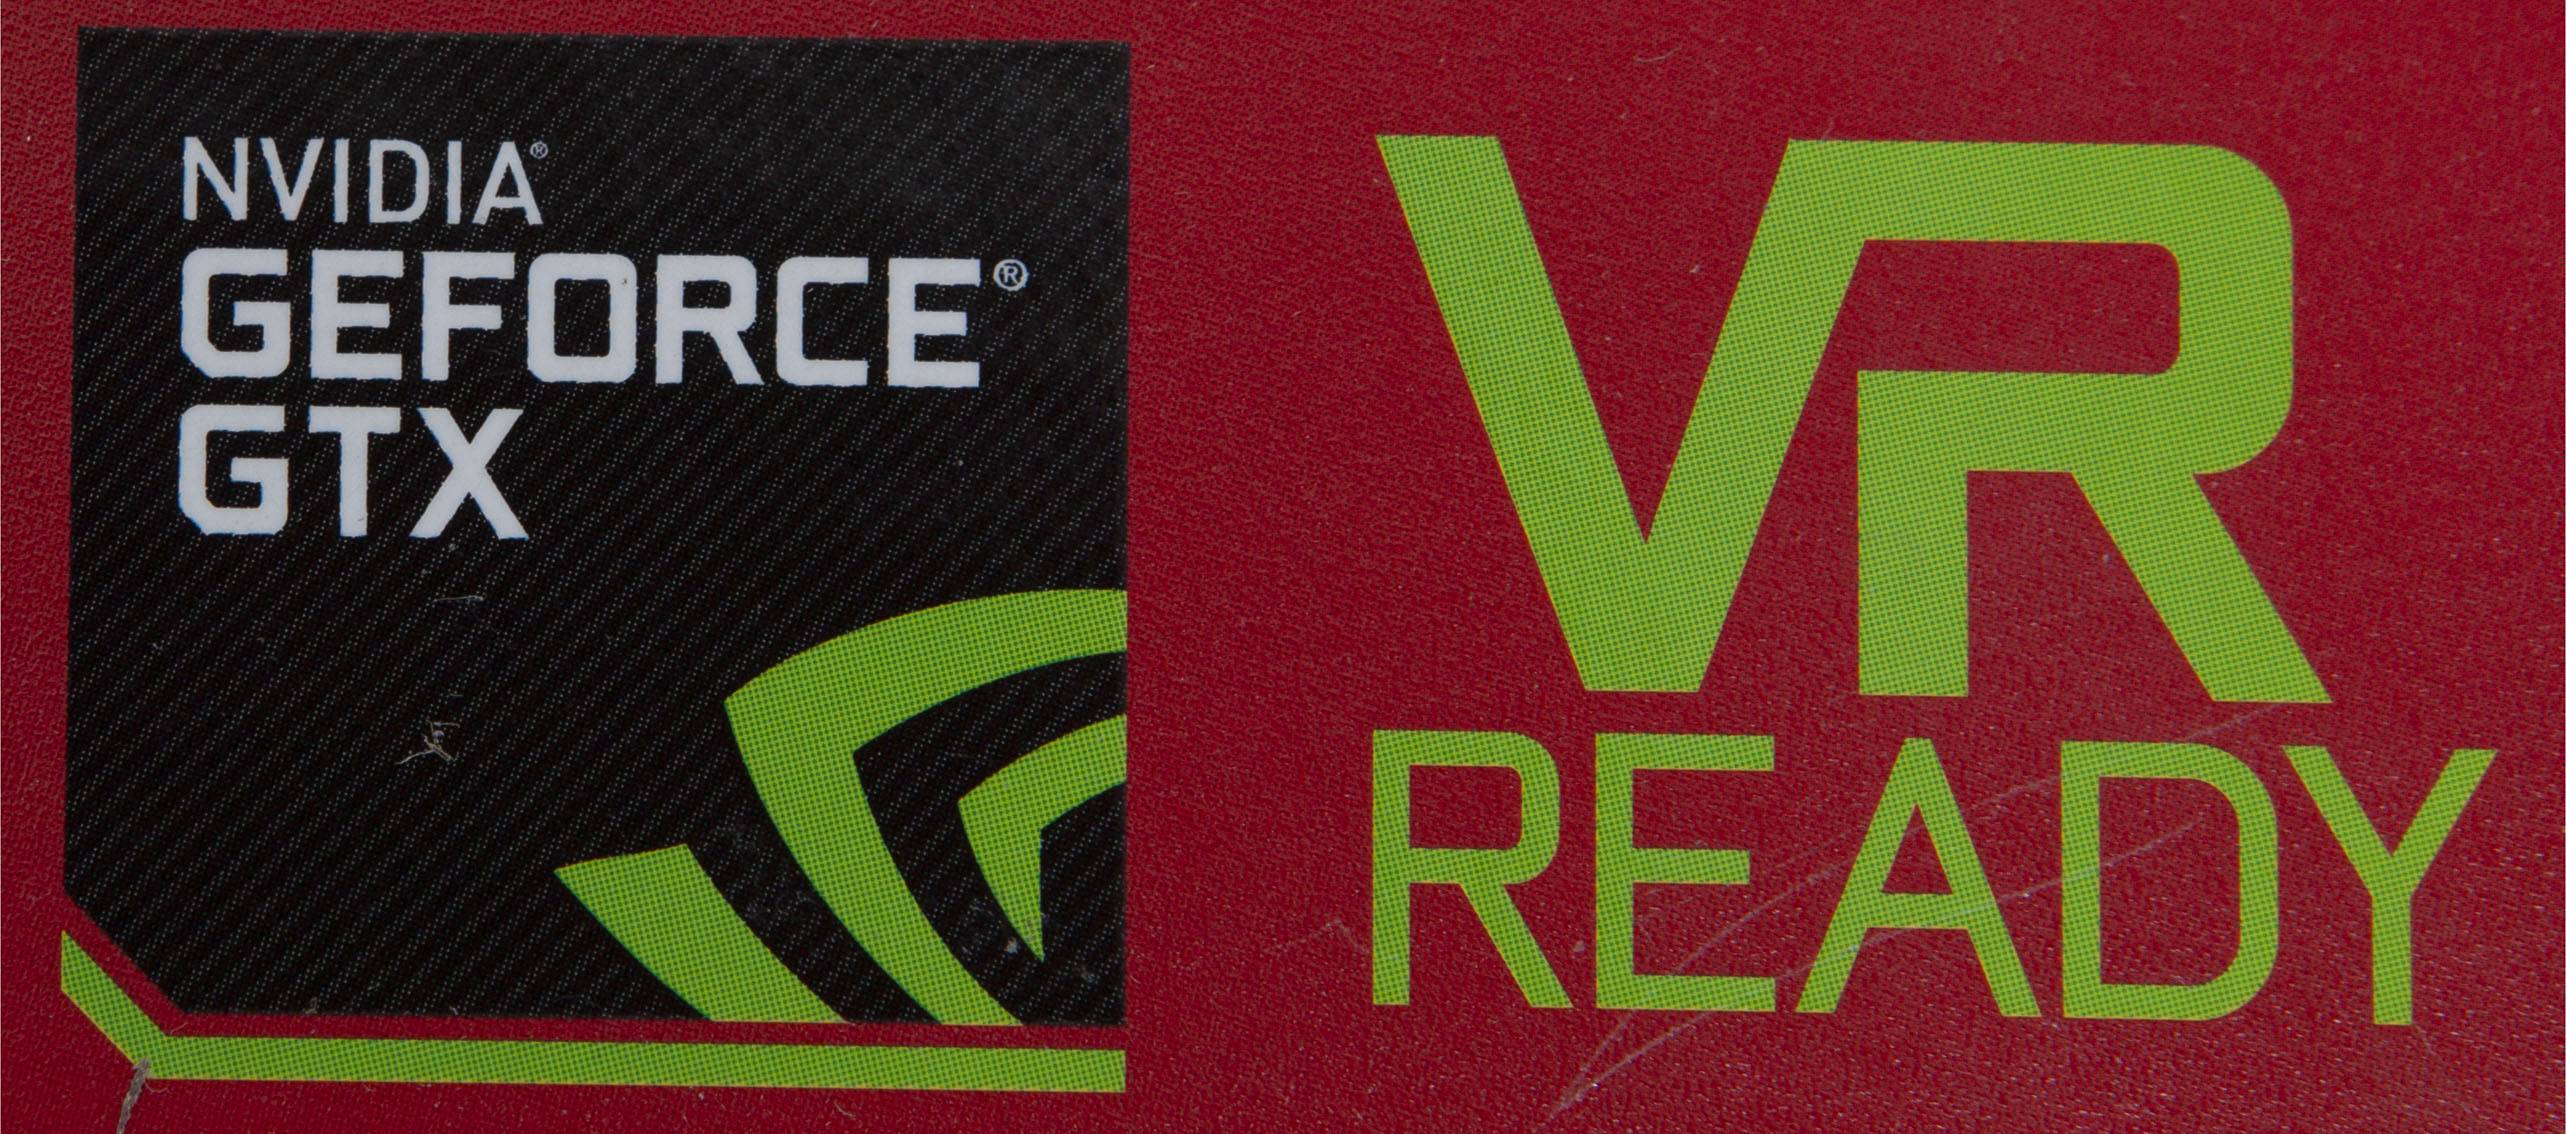 NVIDIA GeForce GTX VR Ready for GTX 1070 and GTX 1070 Ti